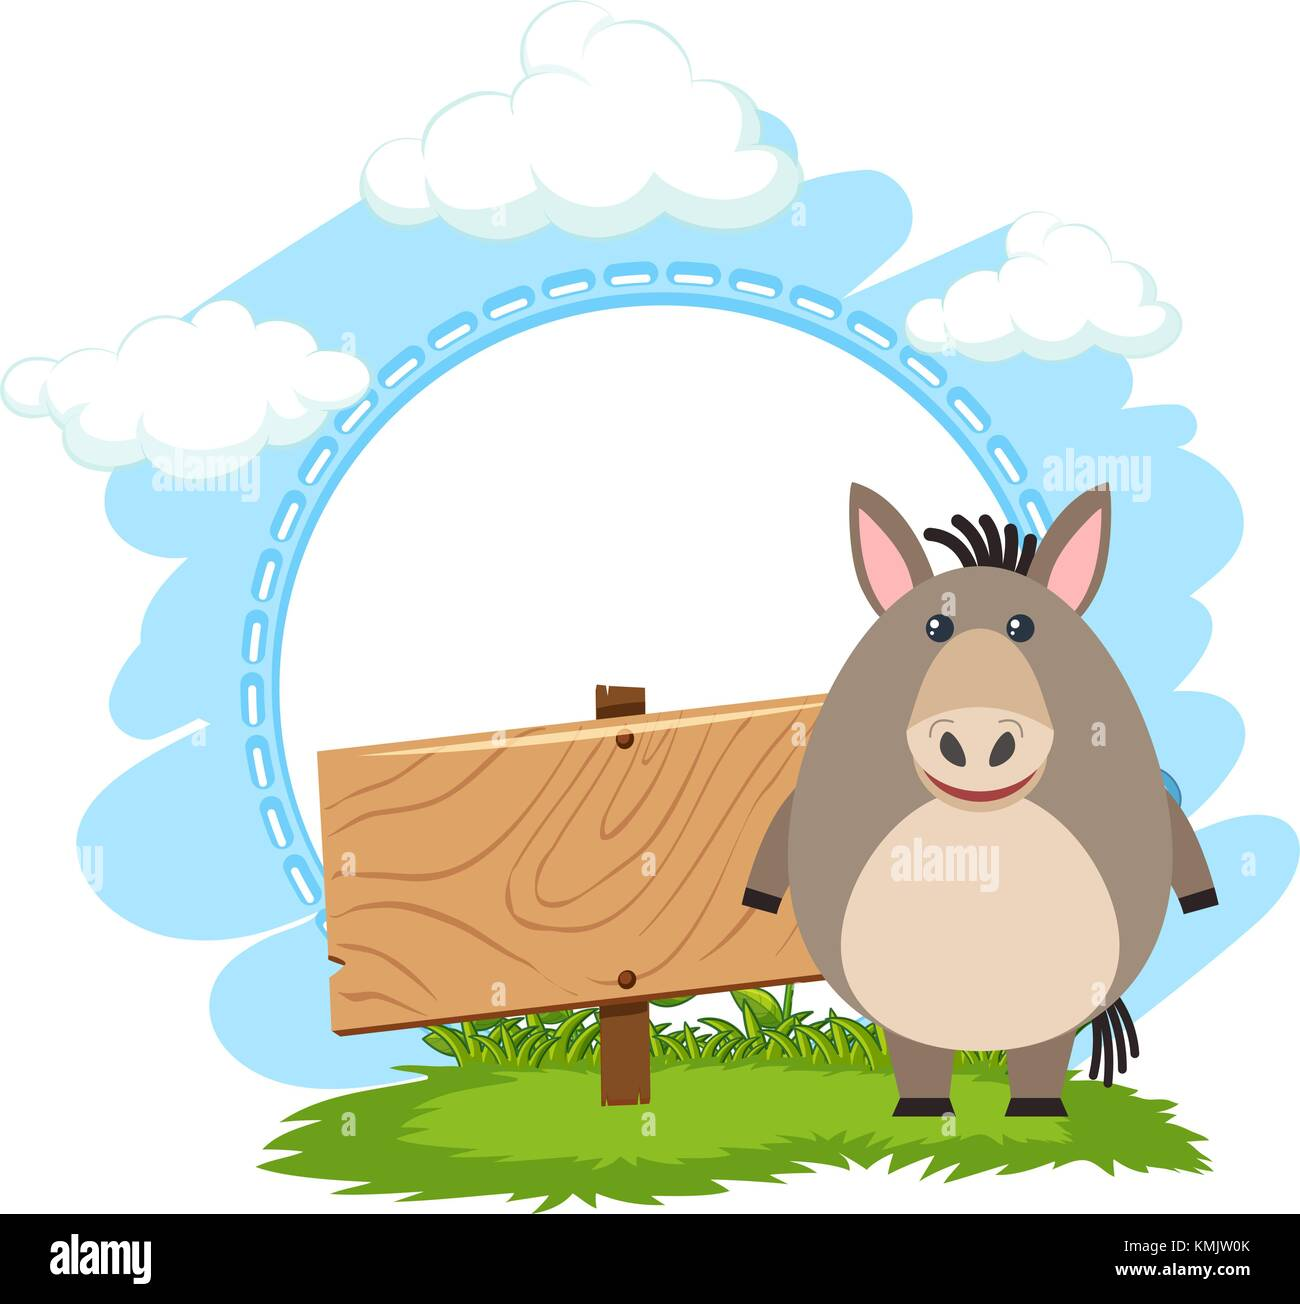 Sign template with cute donkey illustration Stock Vector Art ...